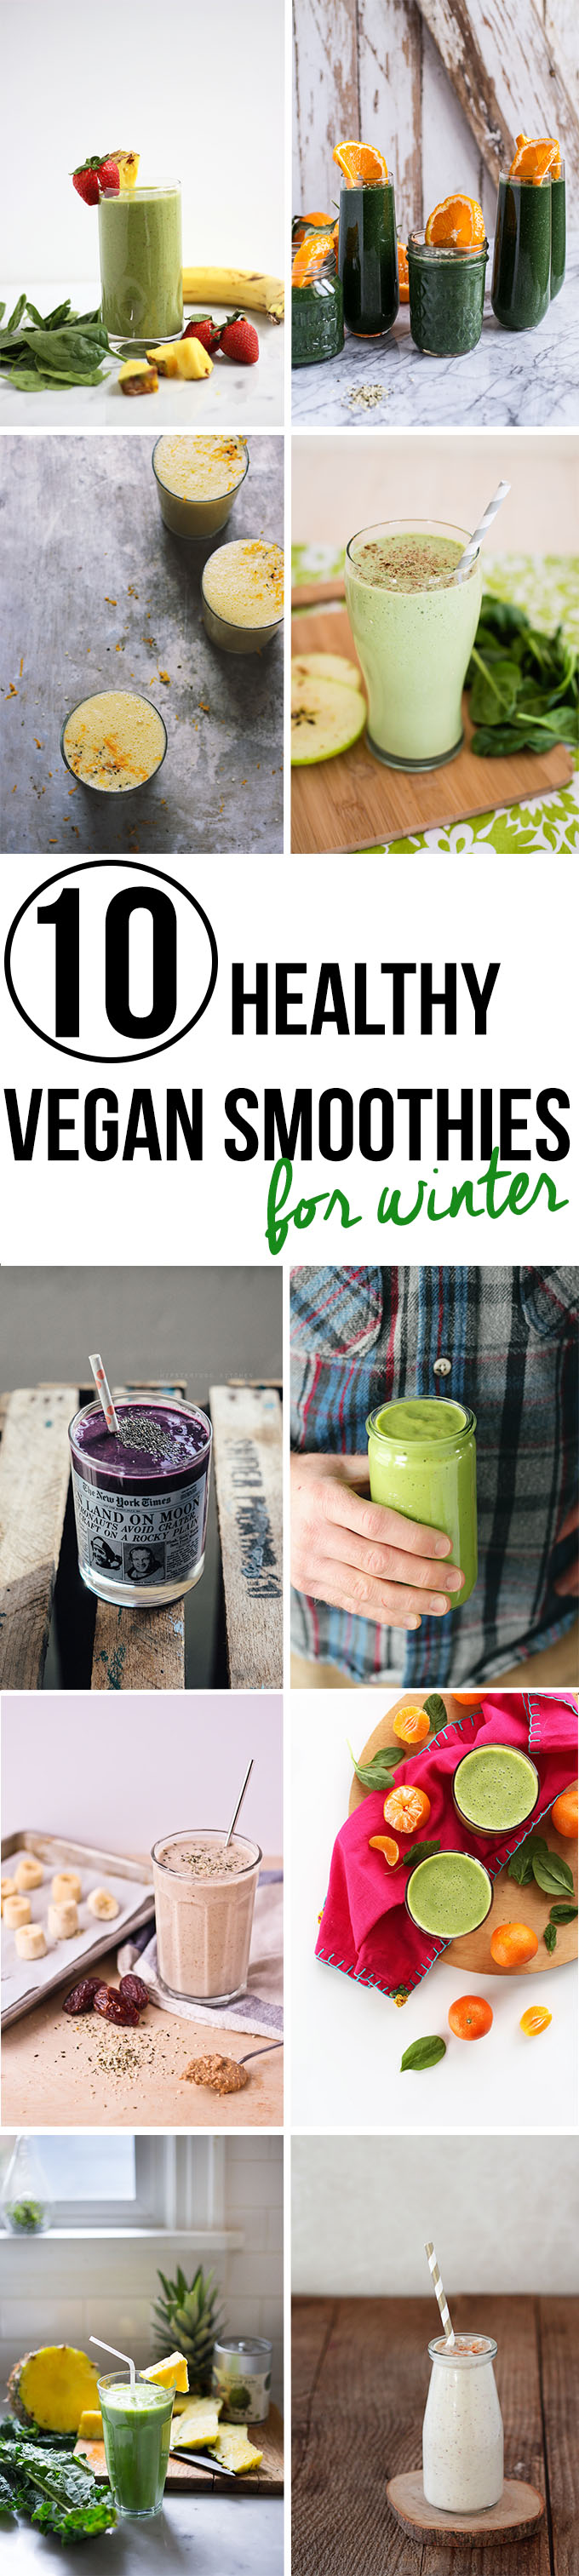 #Healthy #Vegan Smoothies Perfect for Winter